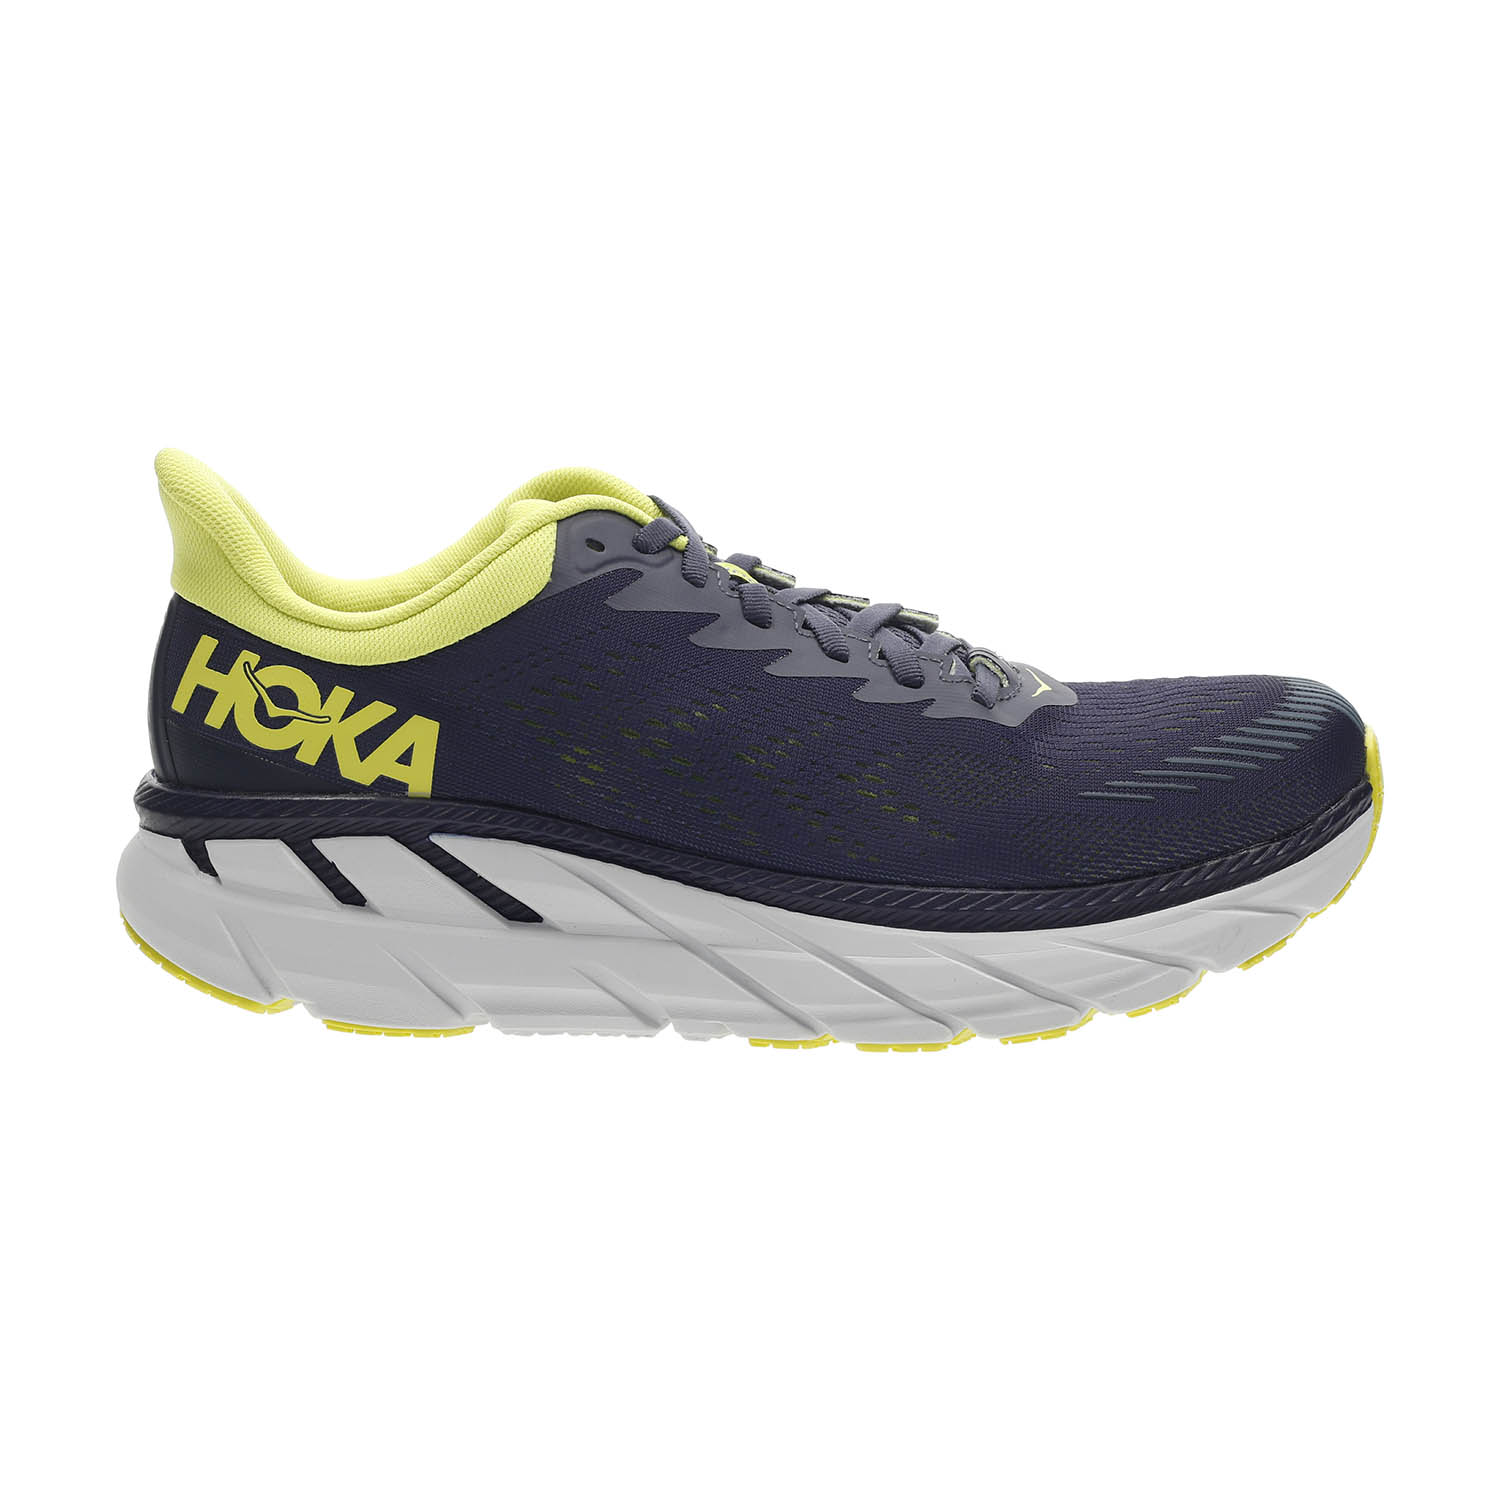 Hoka One One Clifton 7 - Odyssey Grey/Evening Primrose